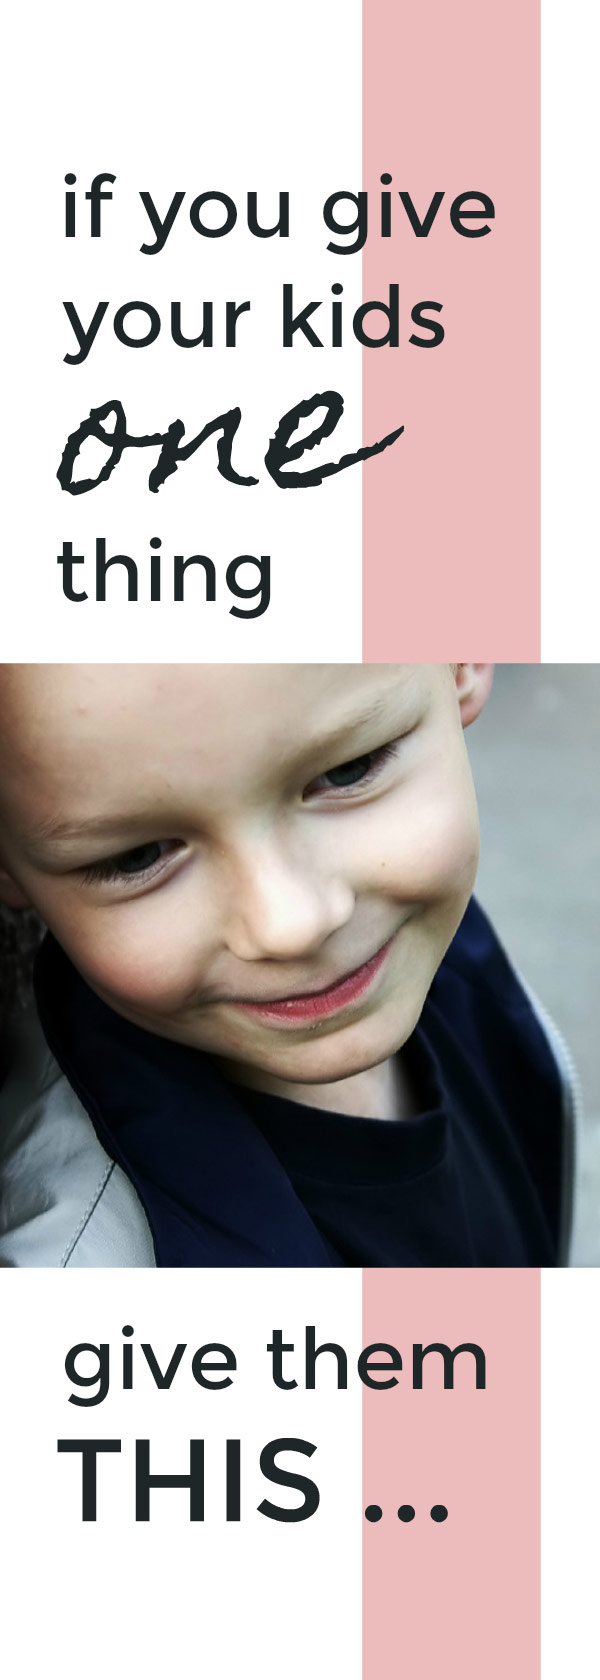 If you give your kids one thing give them this #childhood #positiveparenting #unbusy #parenting #parenttips